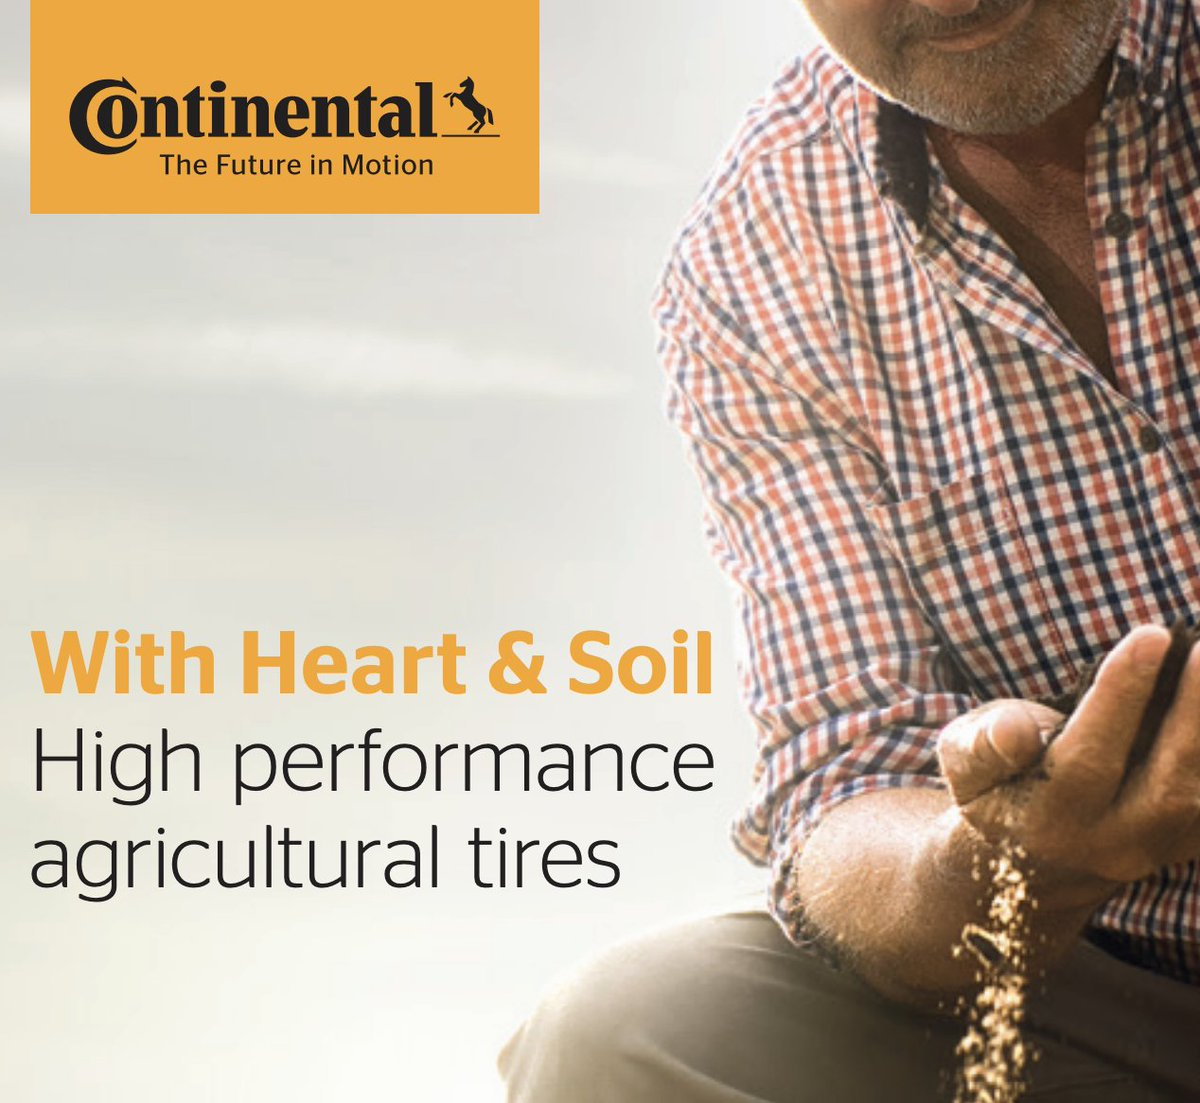 Harm-Hendrik Lange: Agriculture Tires Field Engineer Continental discusses their offering of both rubber track and tires for a complete agriculture solution.  https://t.co/SFgcmGbGot . #tires #ag #farm #crop #tractortuesday Continental Tire https://t.co/0dInVg43HF